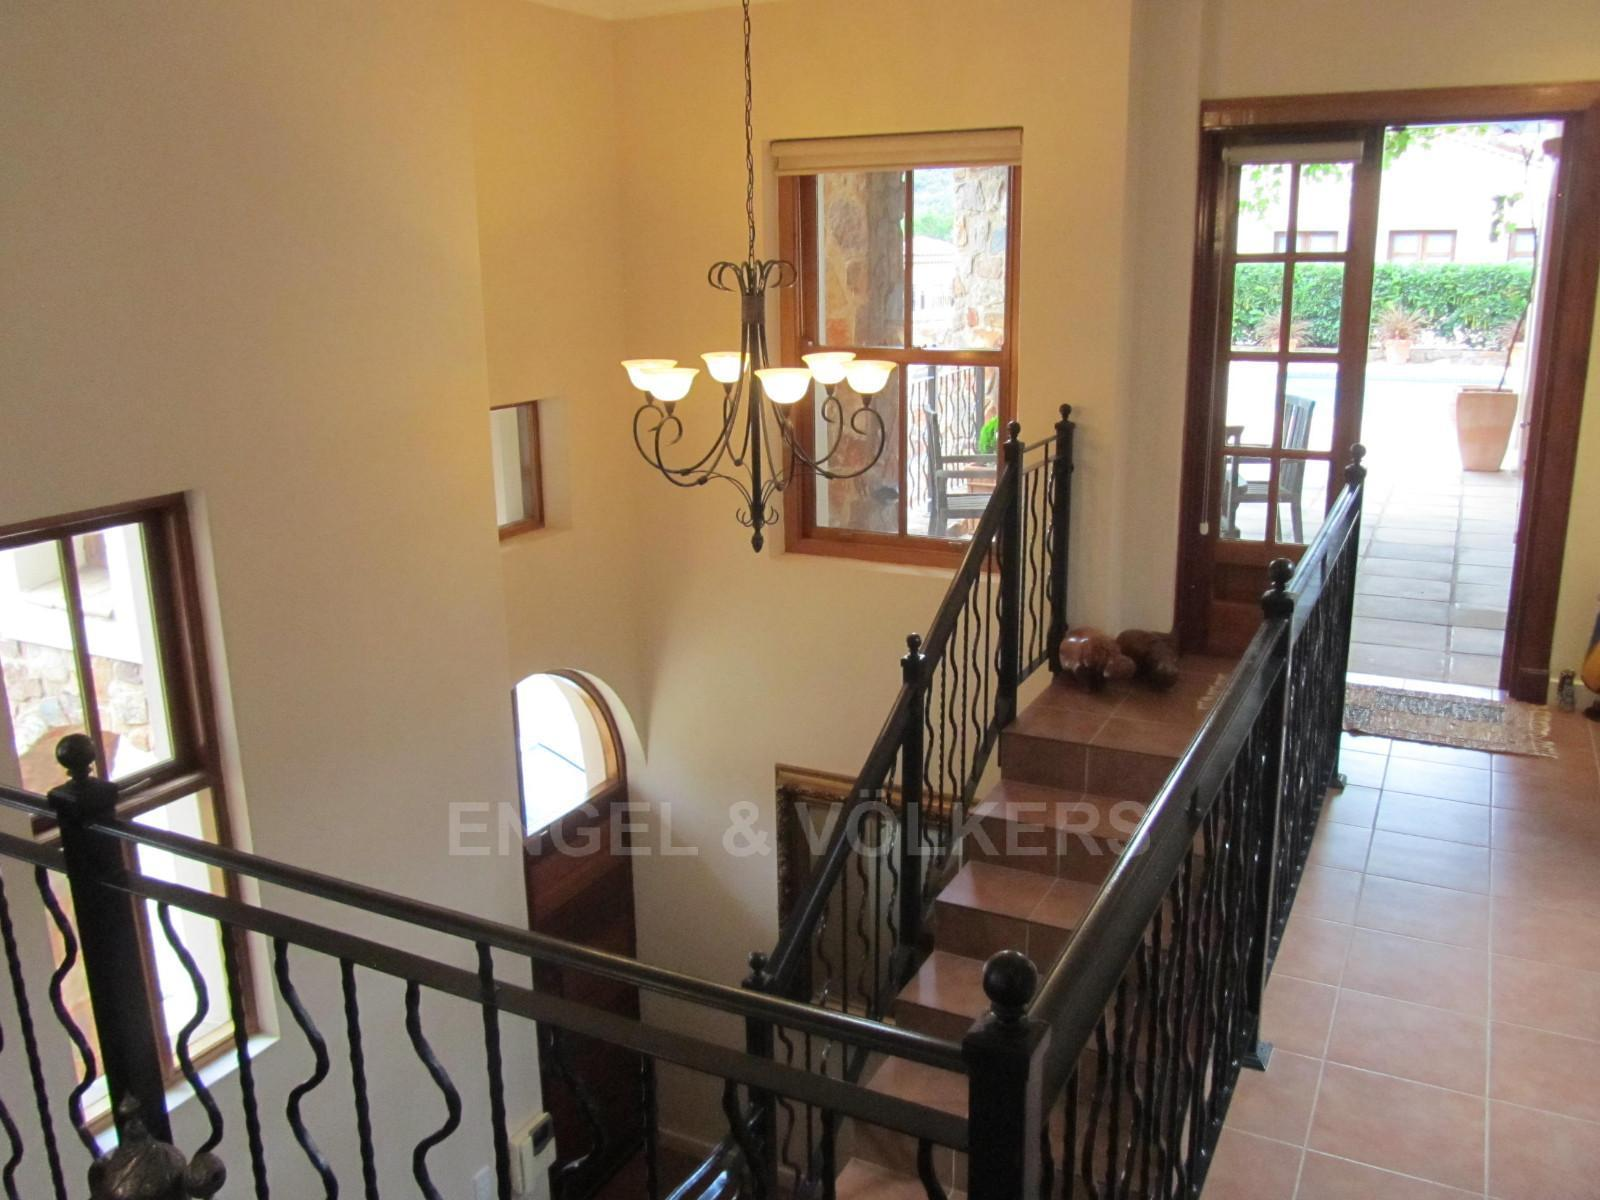 House in Ville D' Afrique - Stairwell